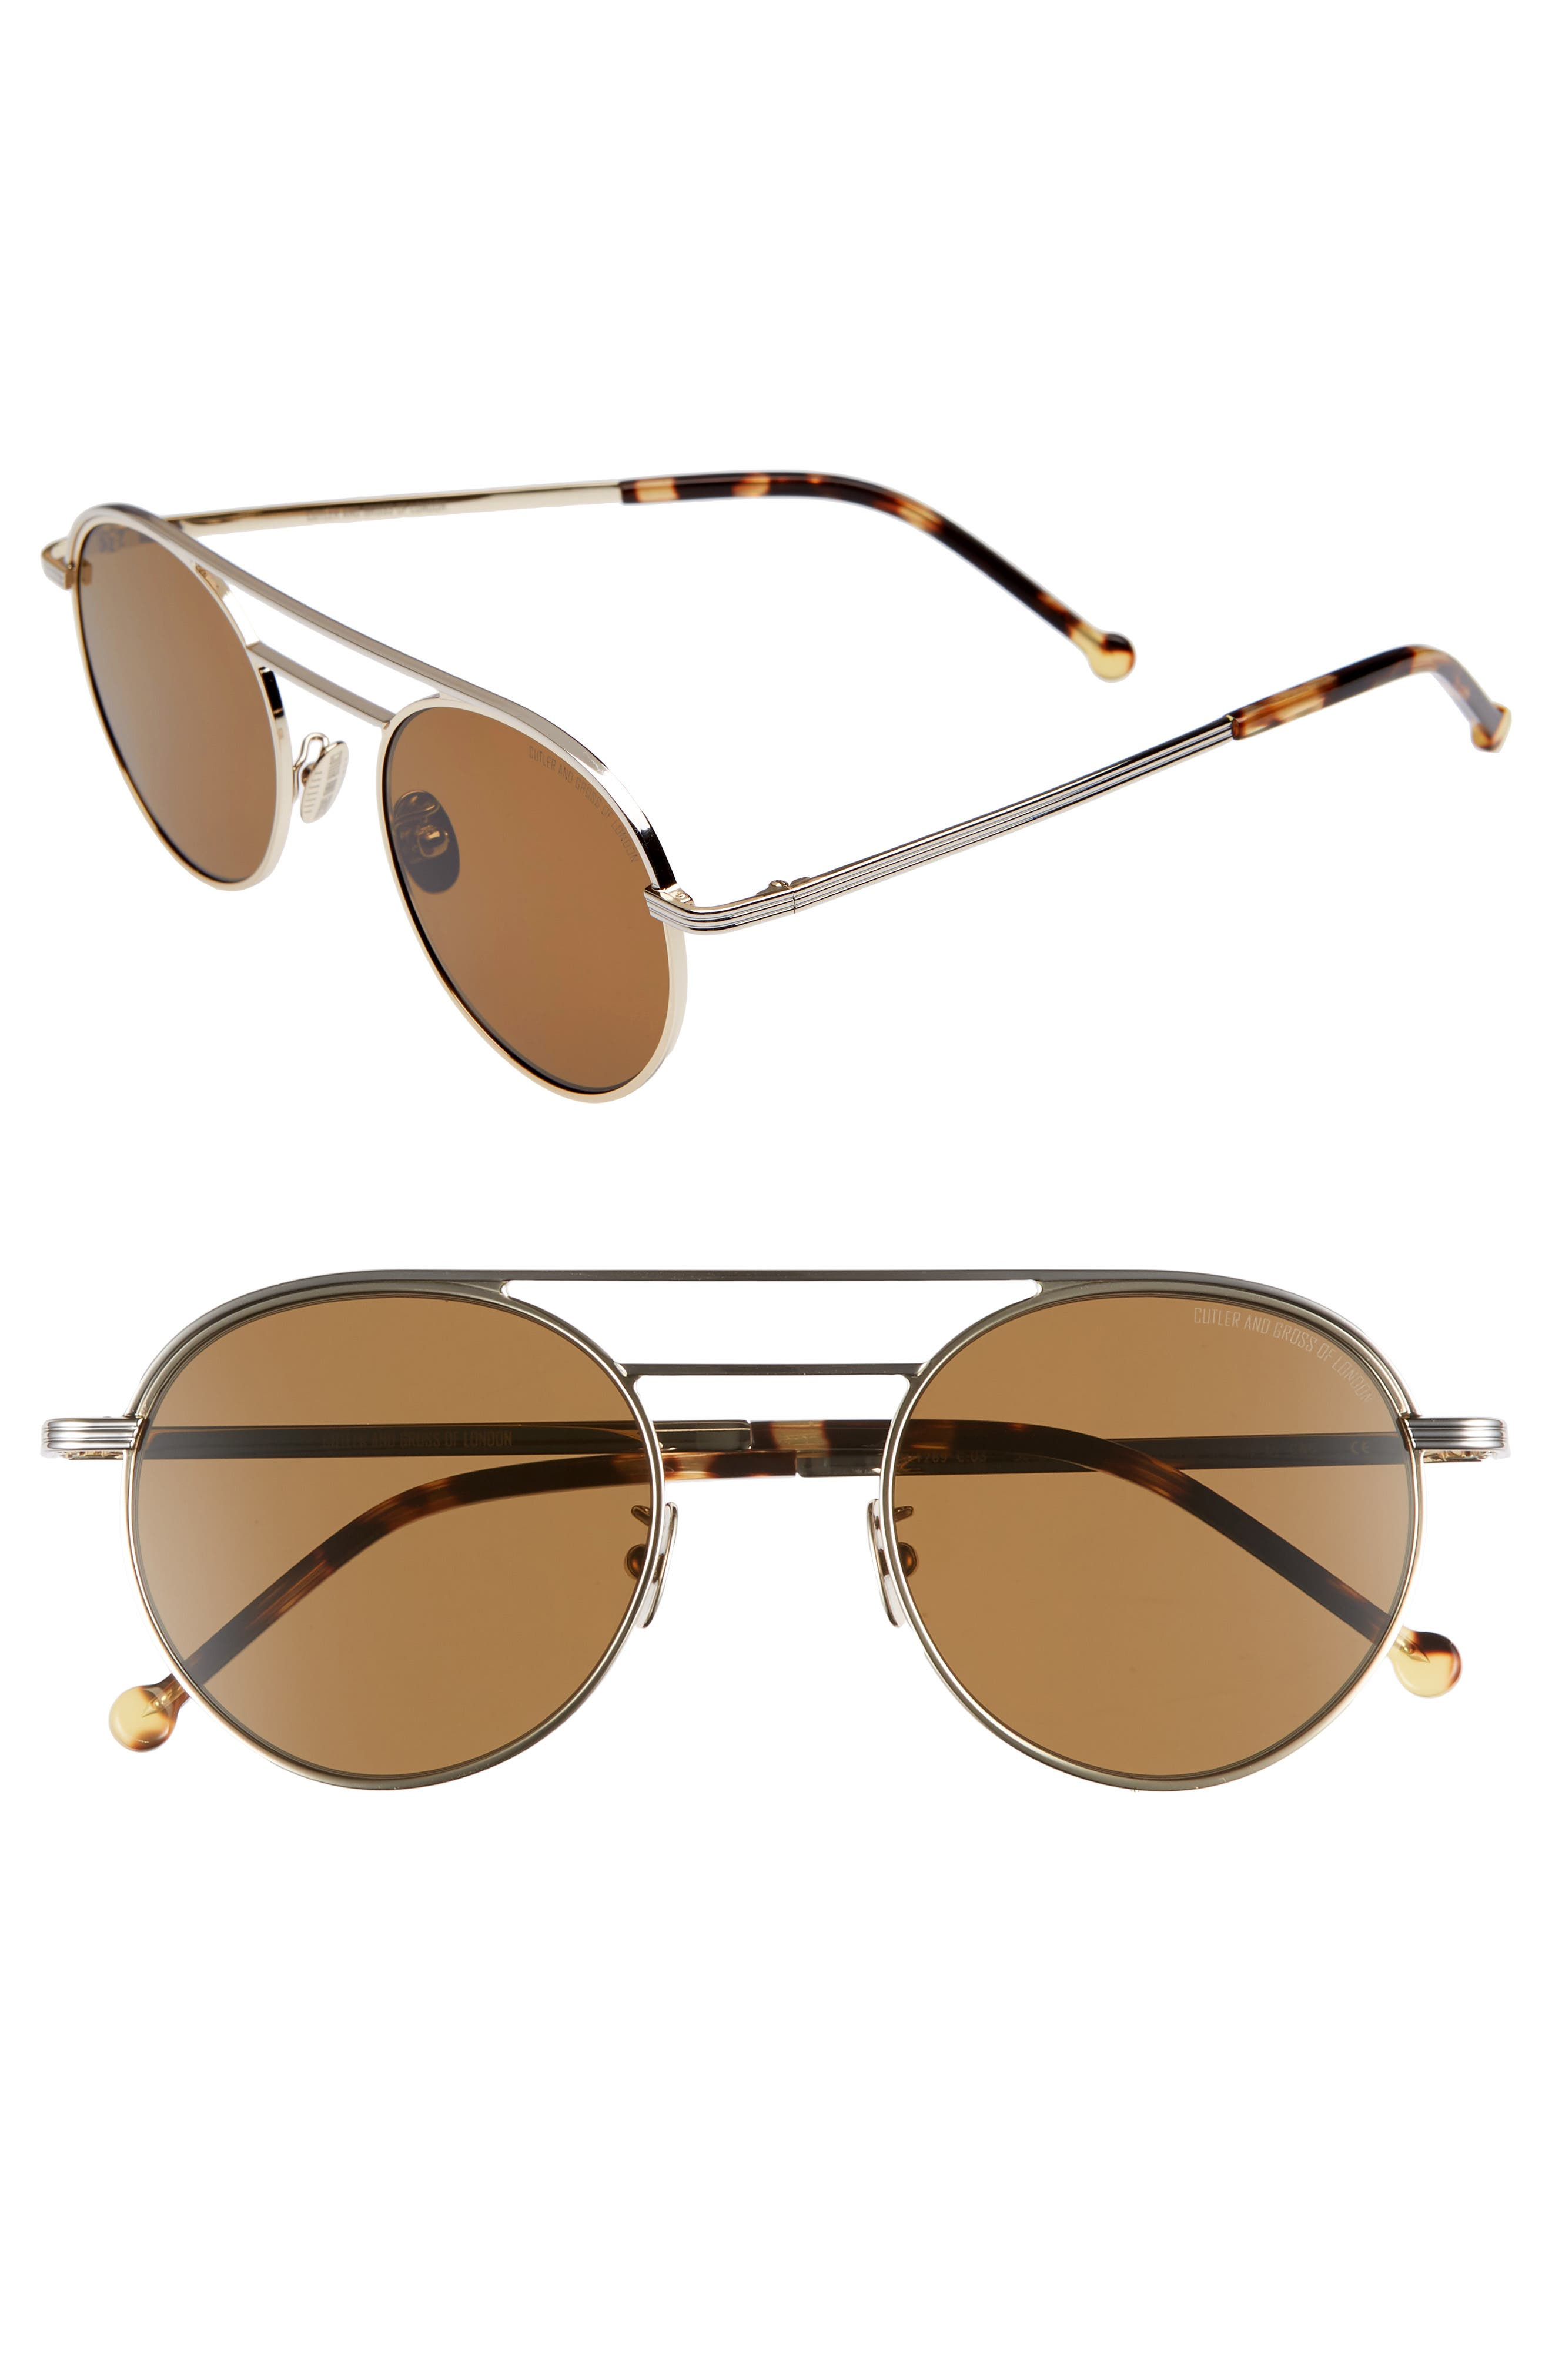 CUTLER AND GROSS 50MM POLARIZED ROUND SUNGLASSES - GOLD/ BROWN